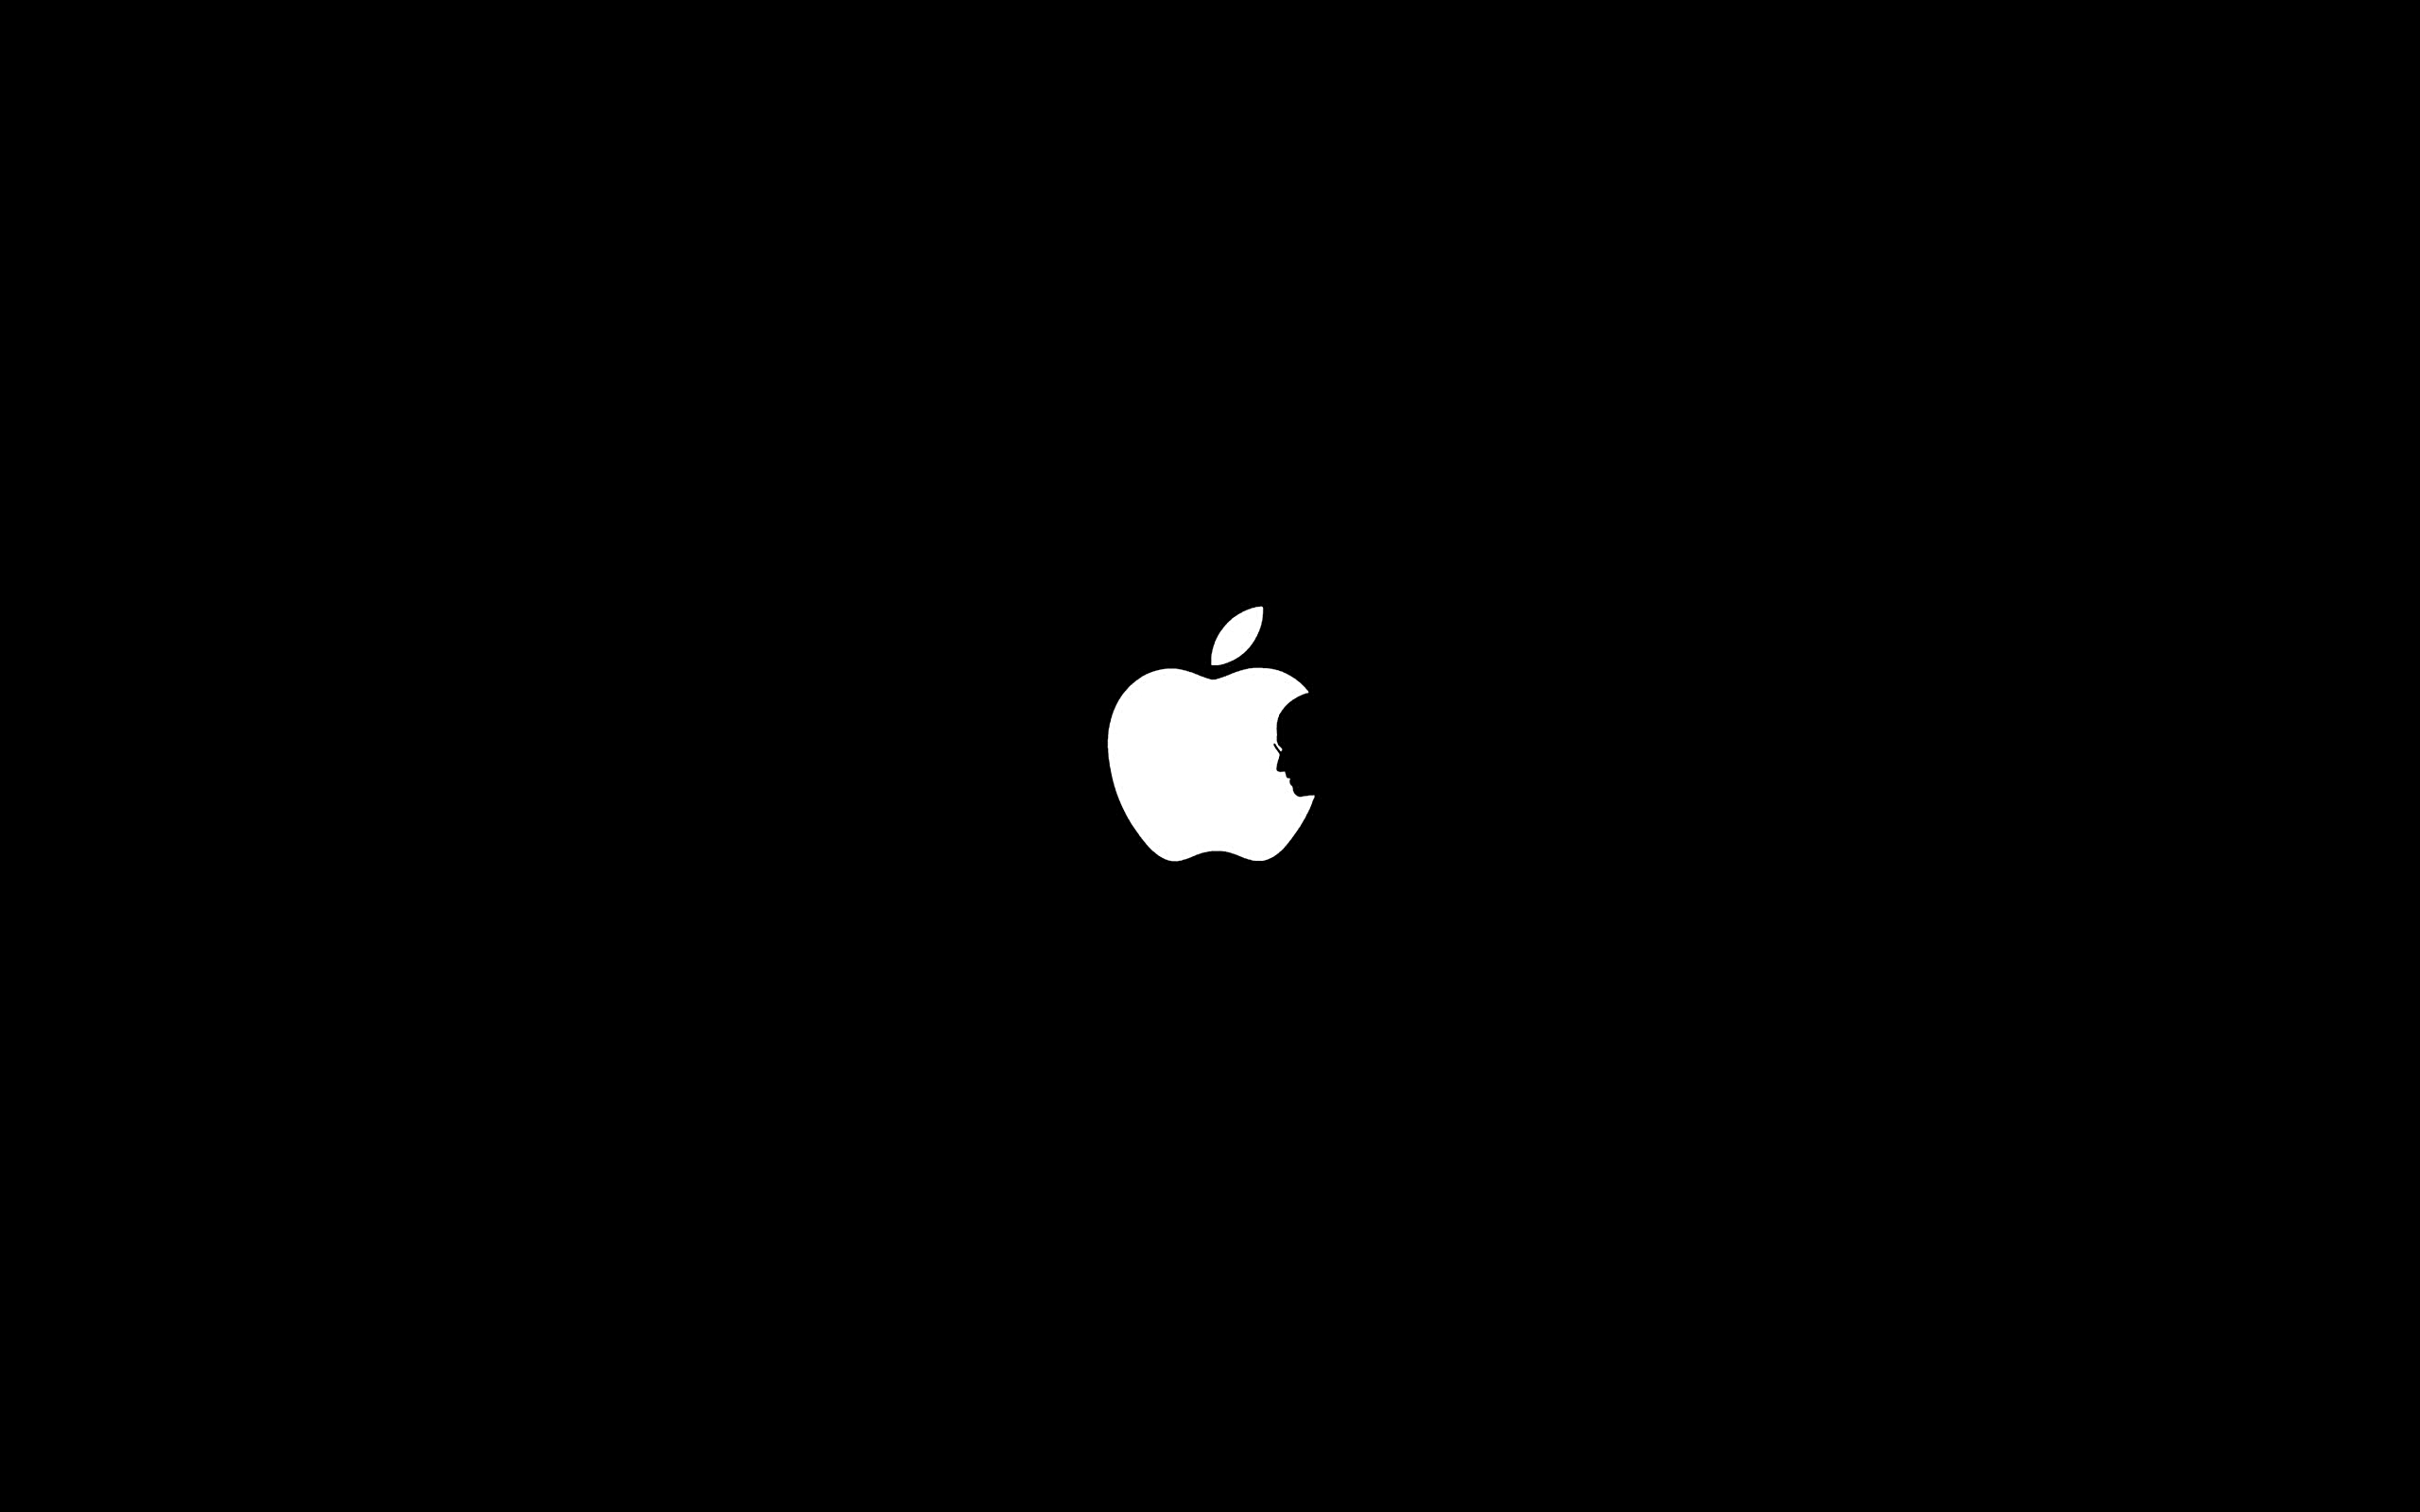 is a rather simple but beautiful tribute to Steve Jobs in wallpaper 2560x1600